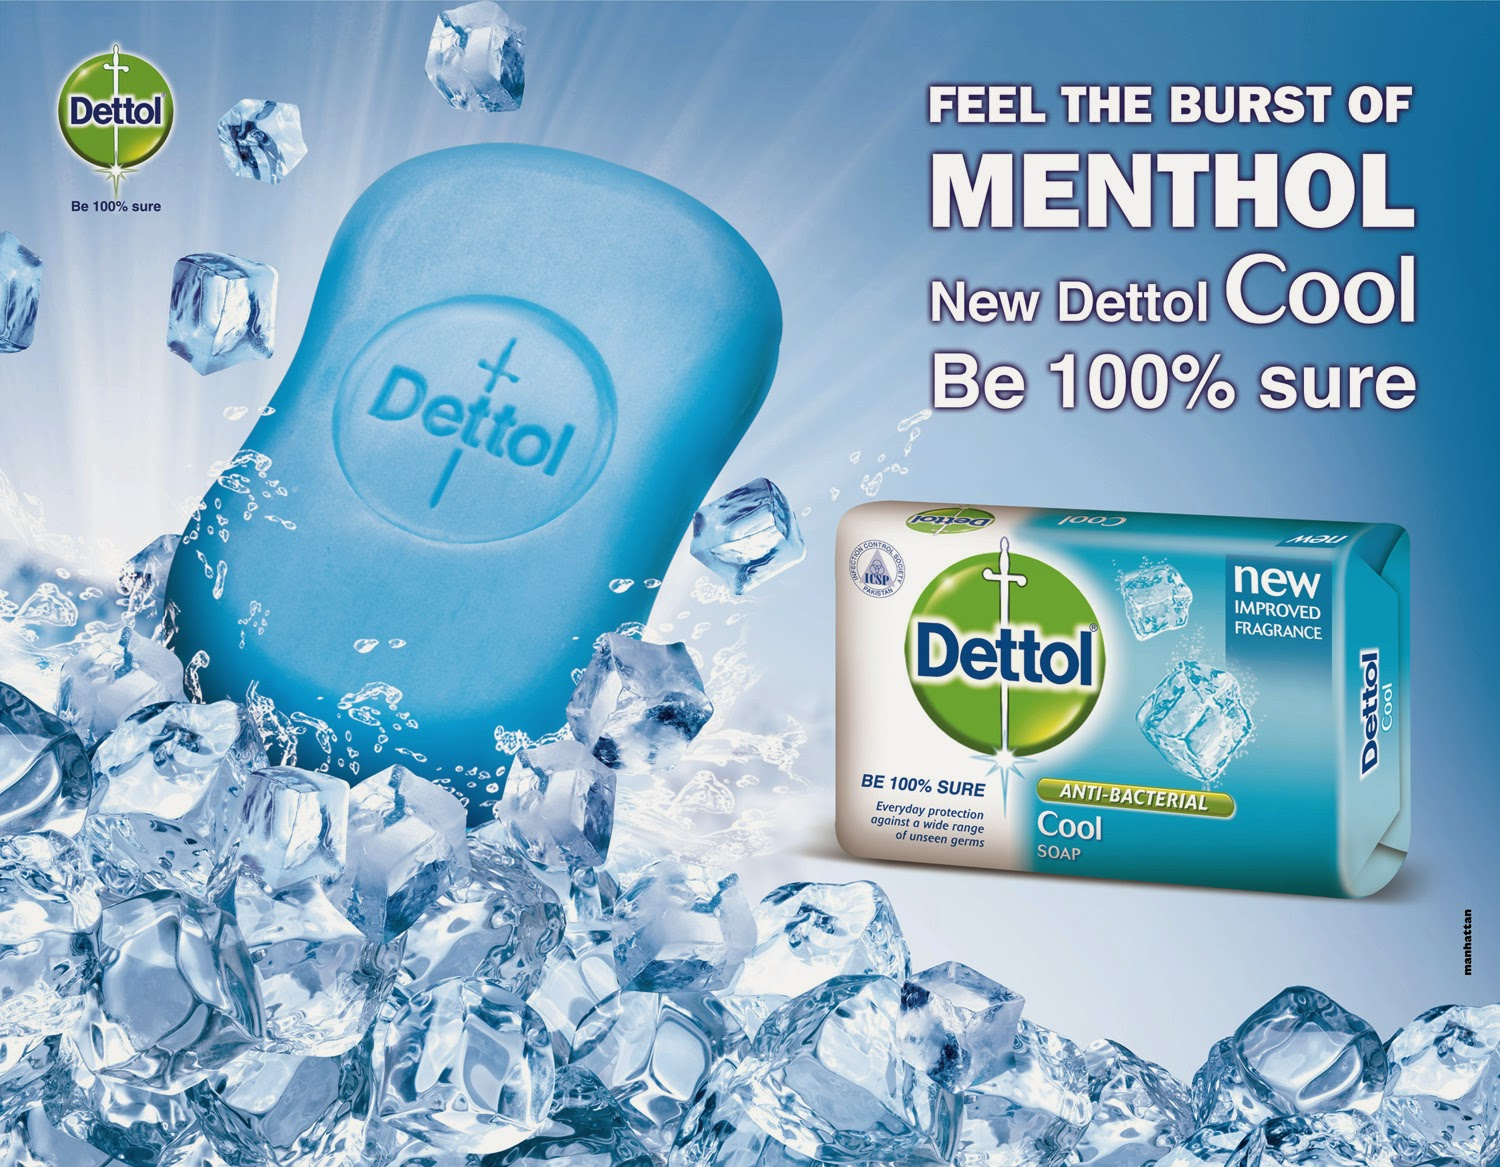 advertising dettol Etbrandequitycom brings latest dettol news, views and updates from all top sources for the indian marketing & advertising industry.